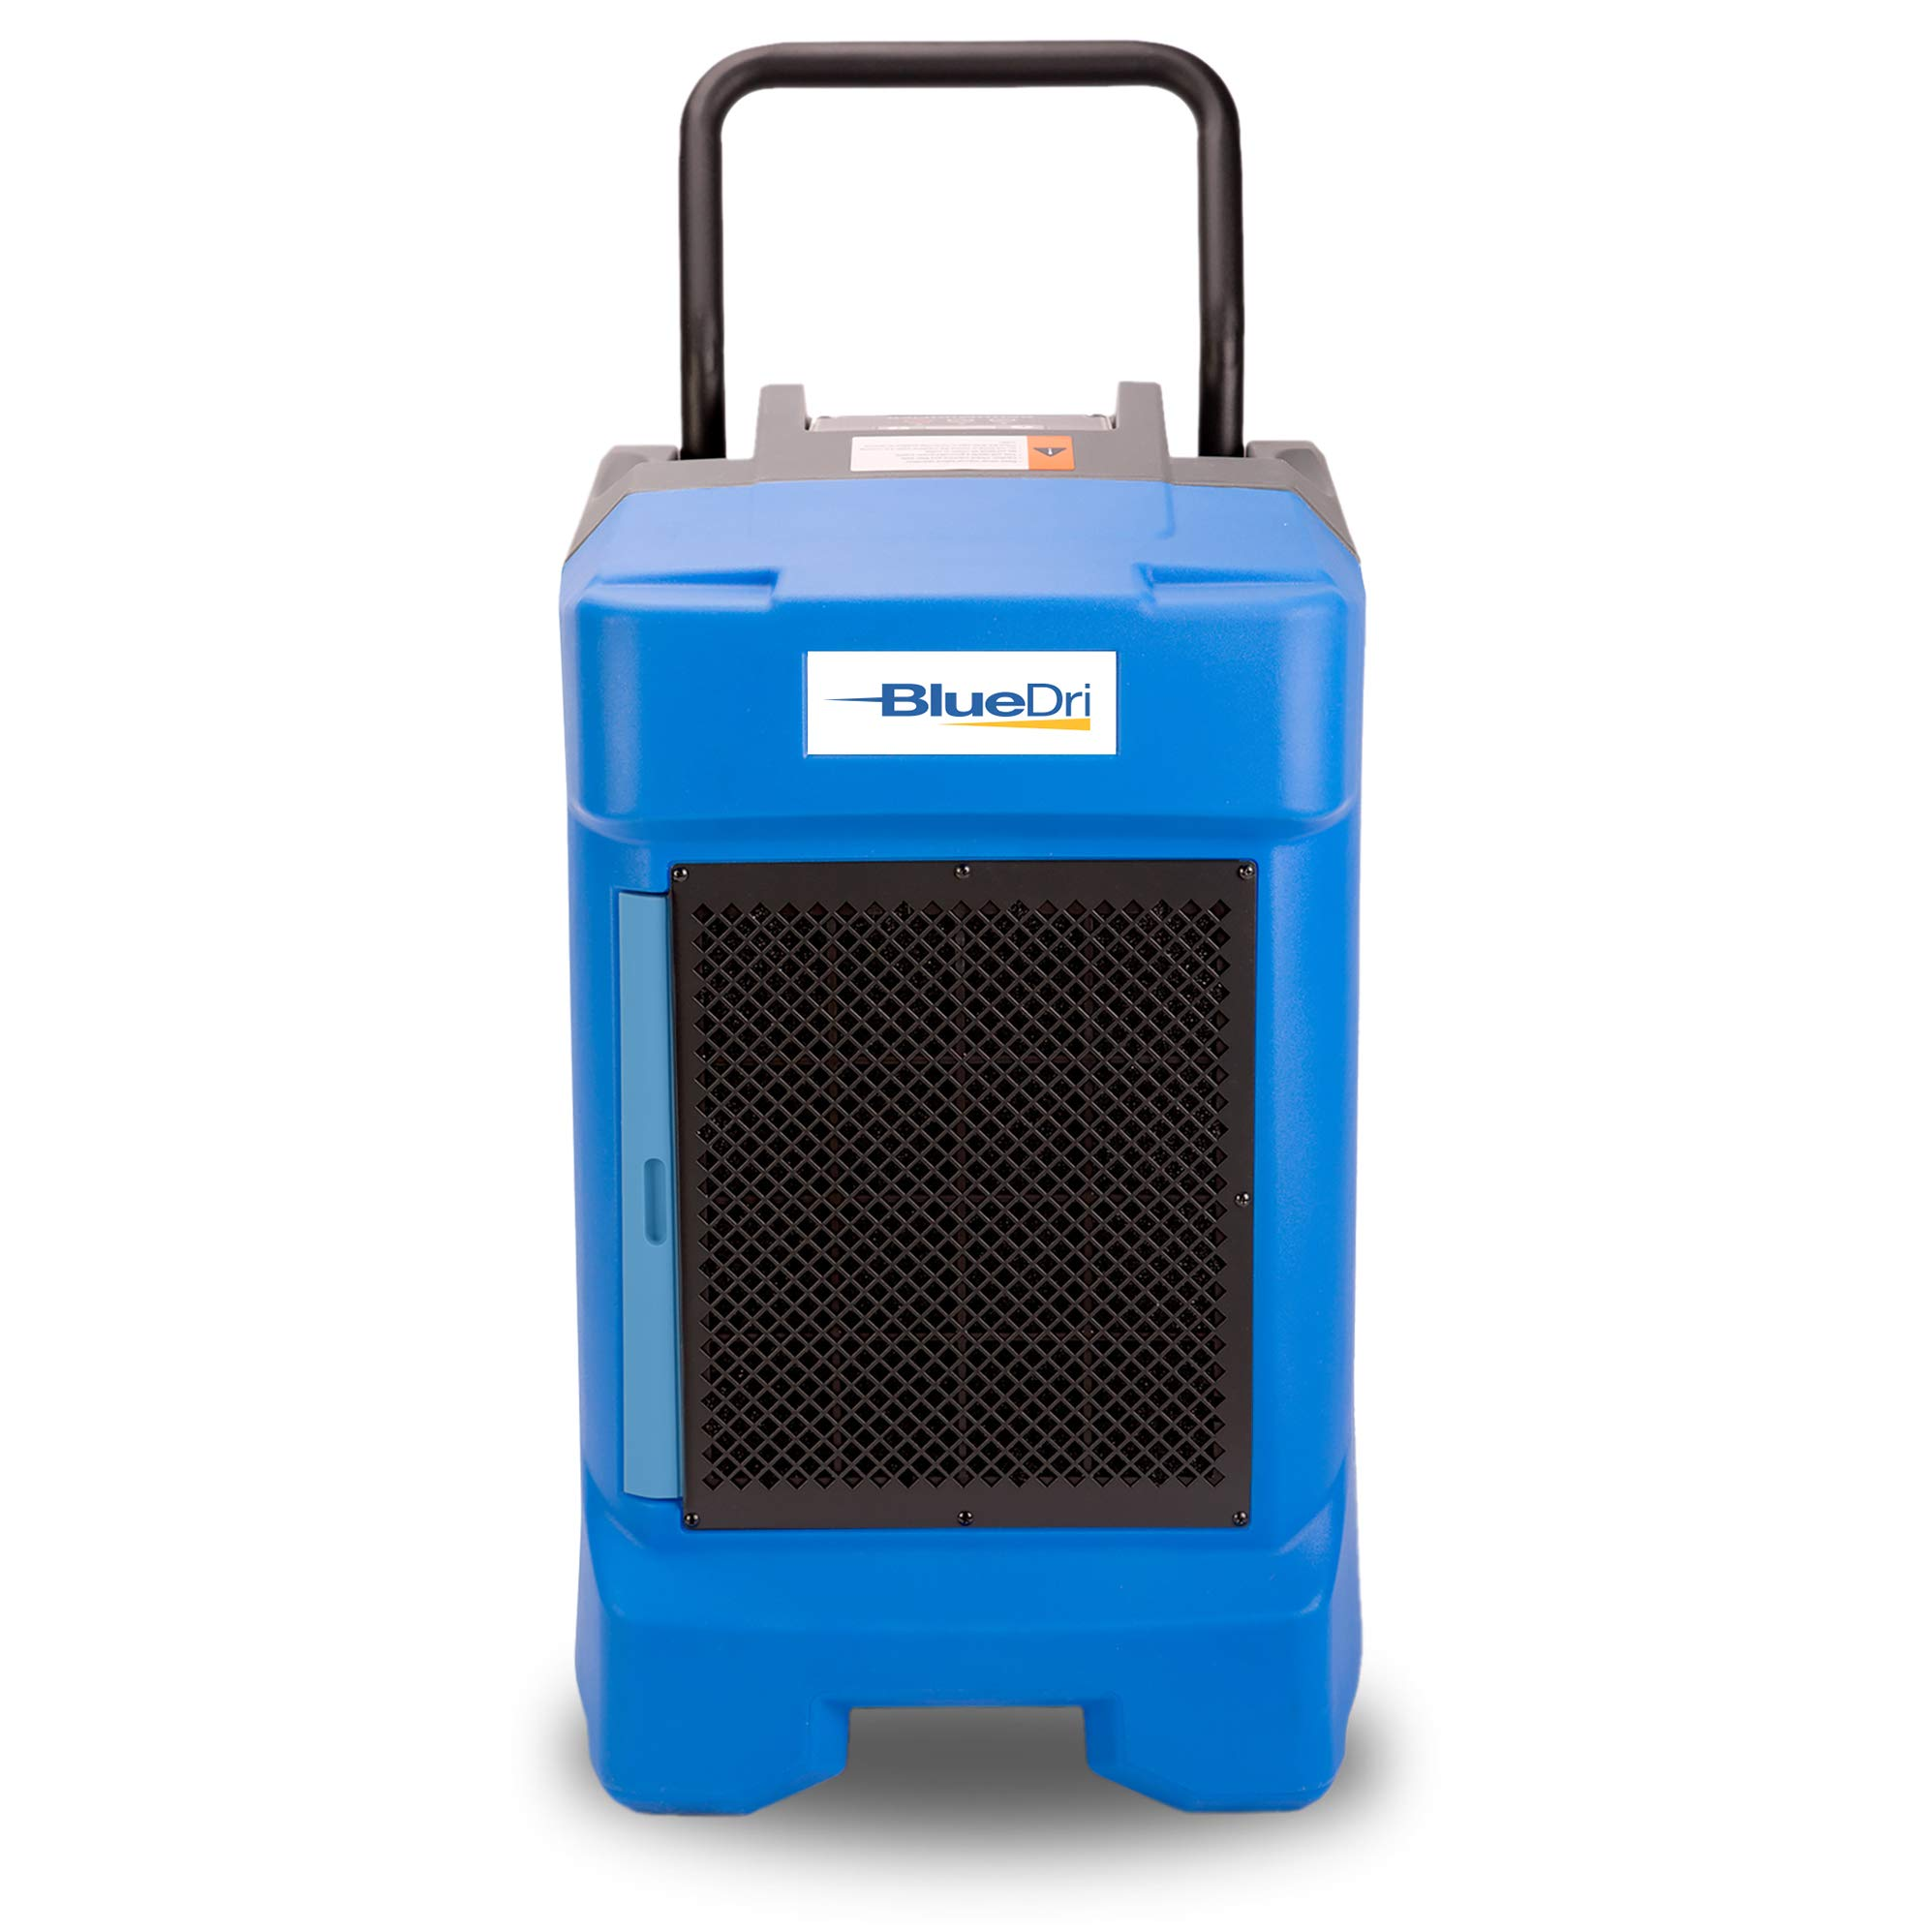 BlueDri BD-130P 225PPD Industrial Commercial Dehumidifier with Hose for Basements in Homes and Job Sites Blue